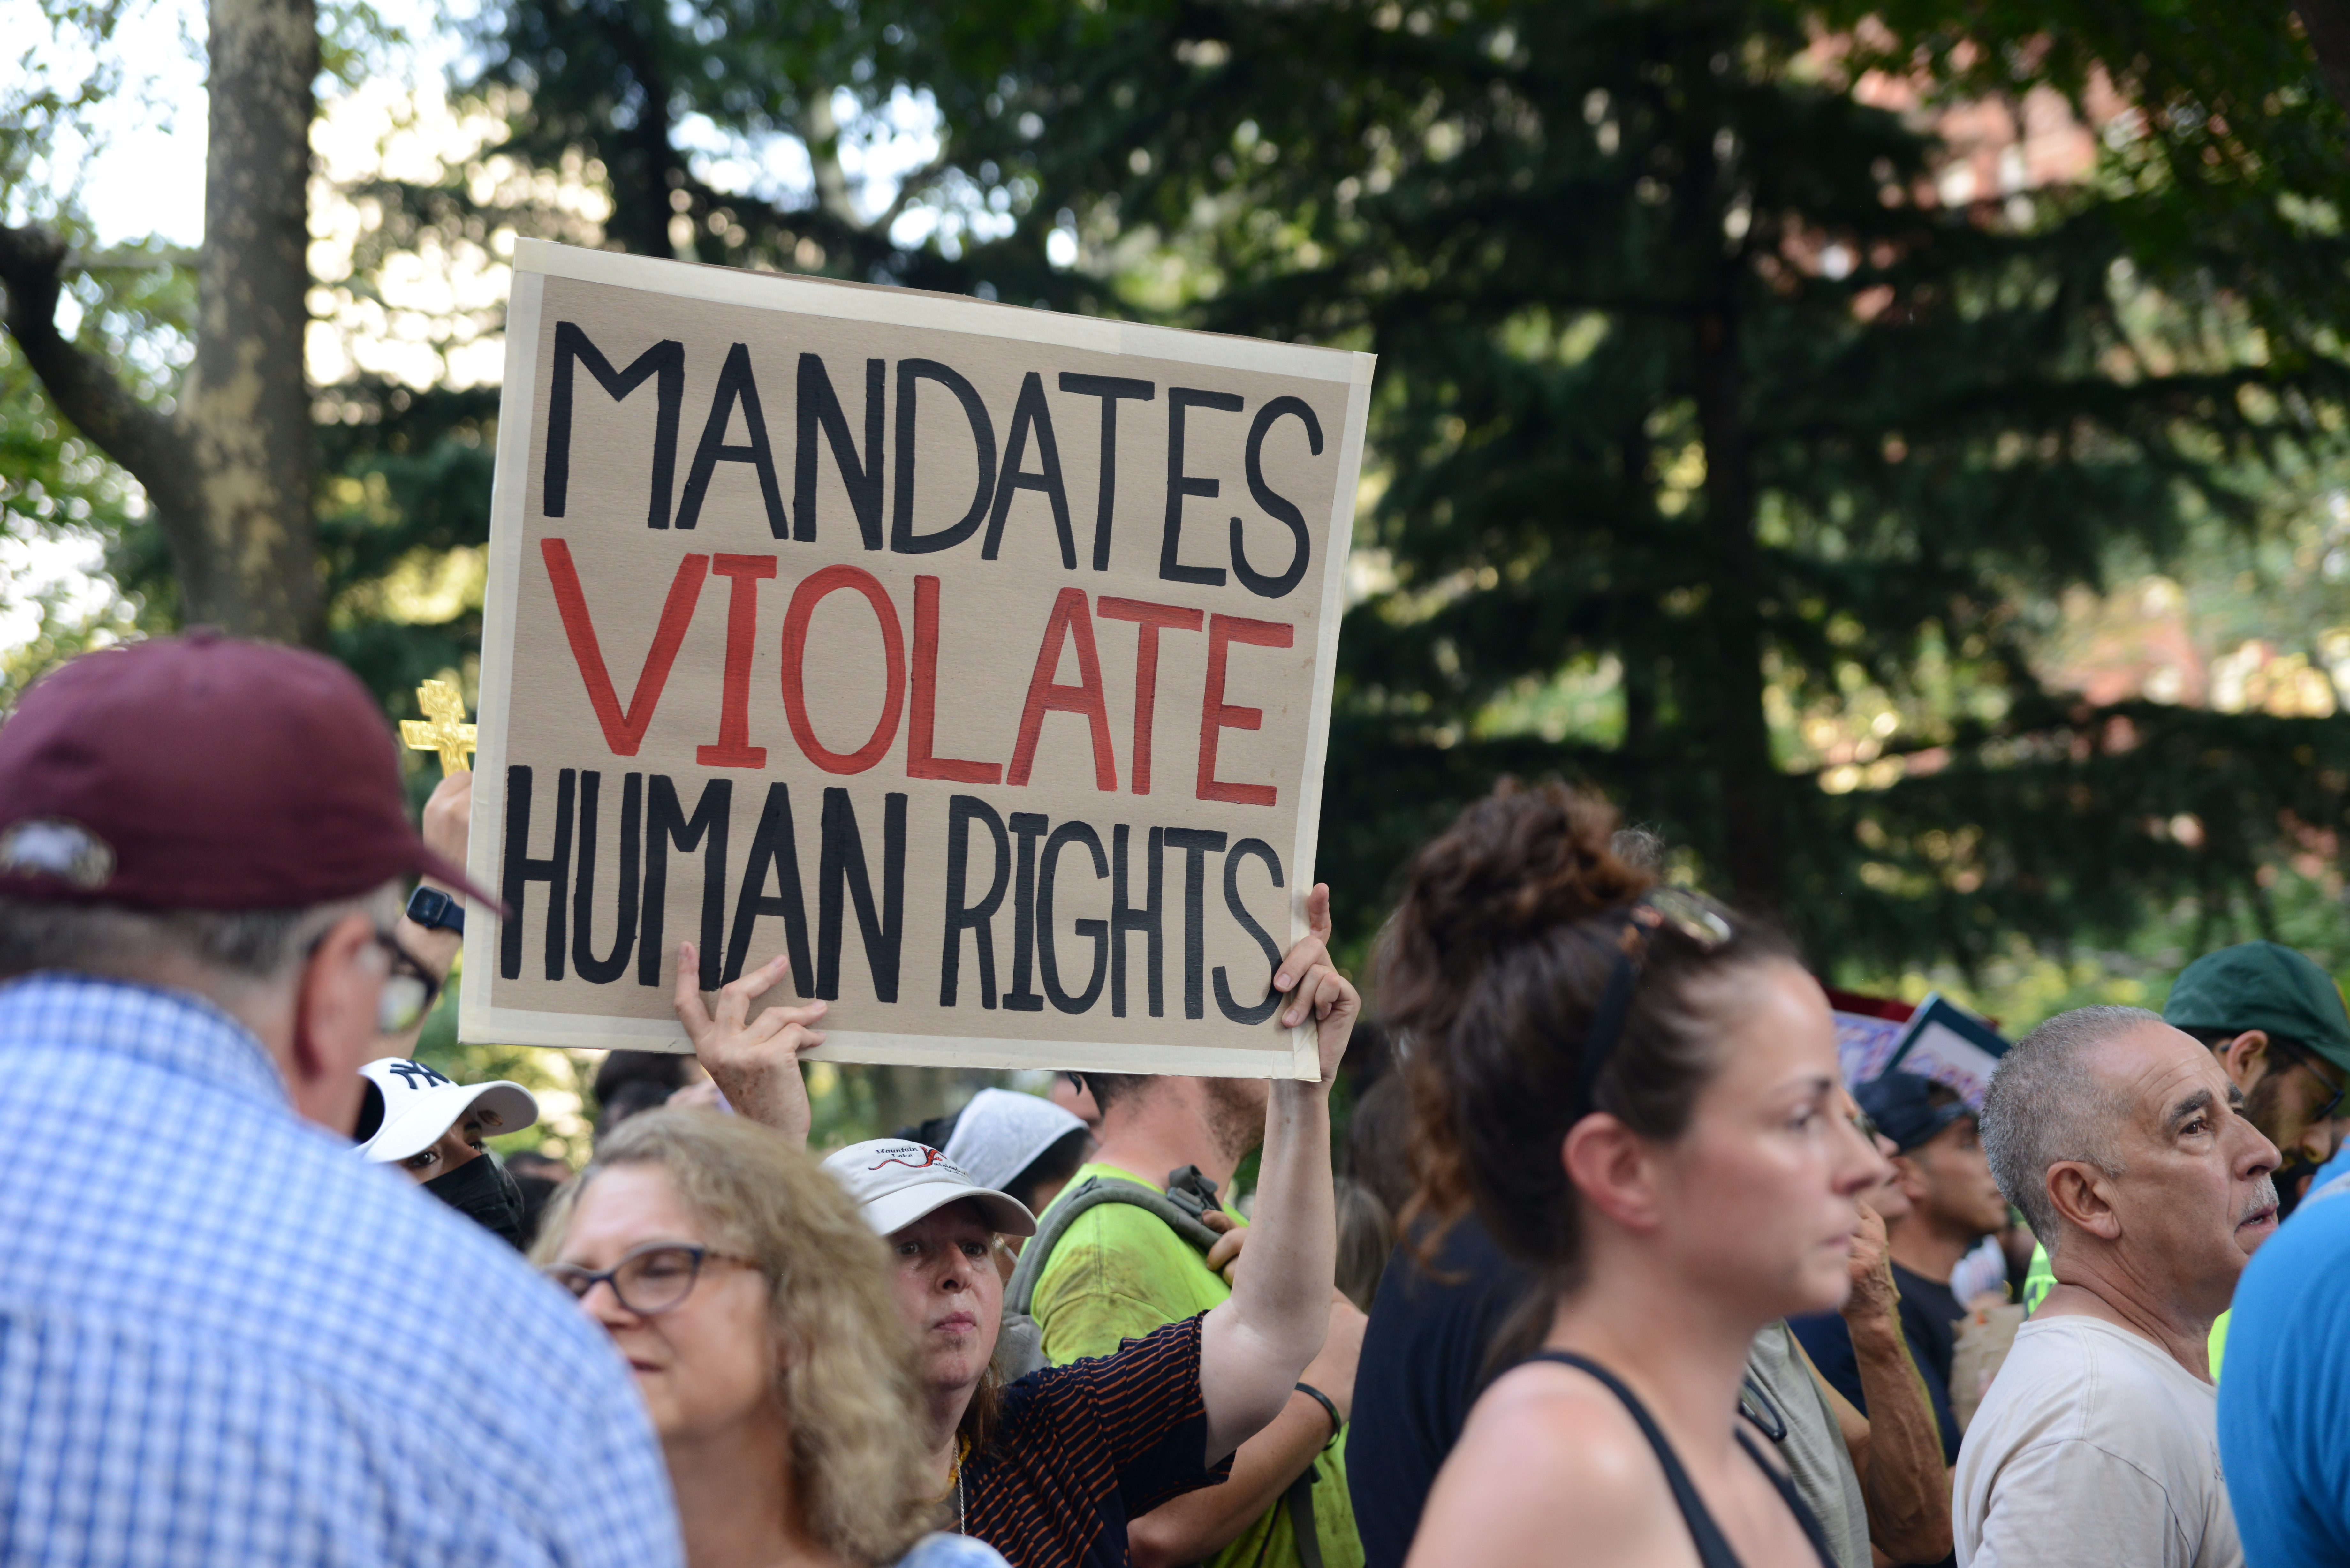 Hundreds of protesters, many of them city workers, demonstrated against vaccine mandates outside City Hall on Wednesday, Aug. 25, 2021.